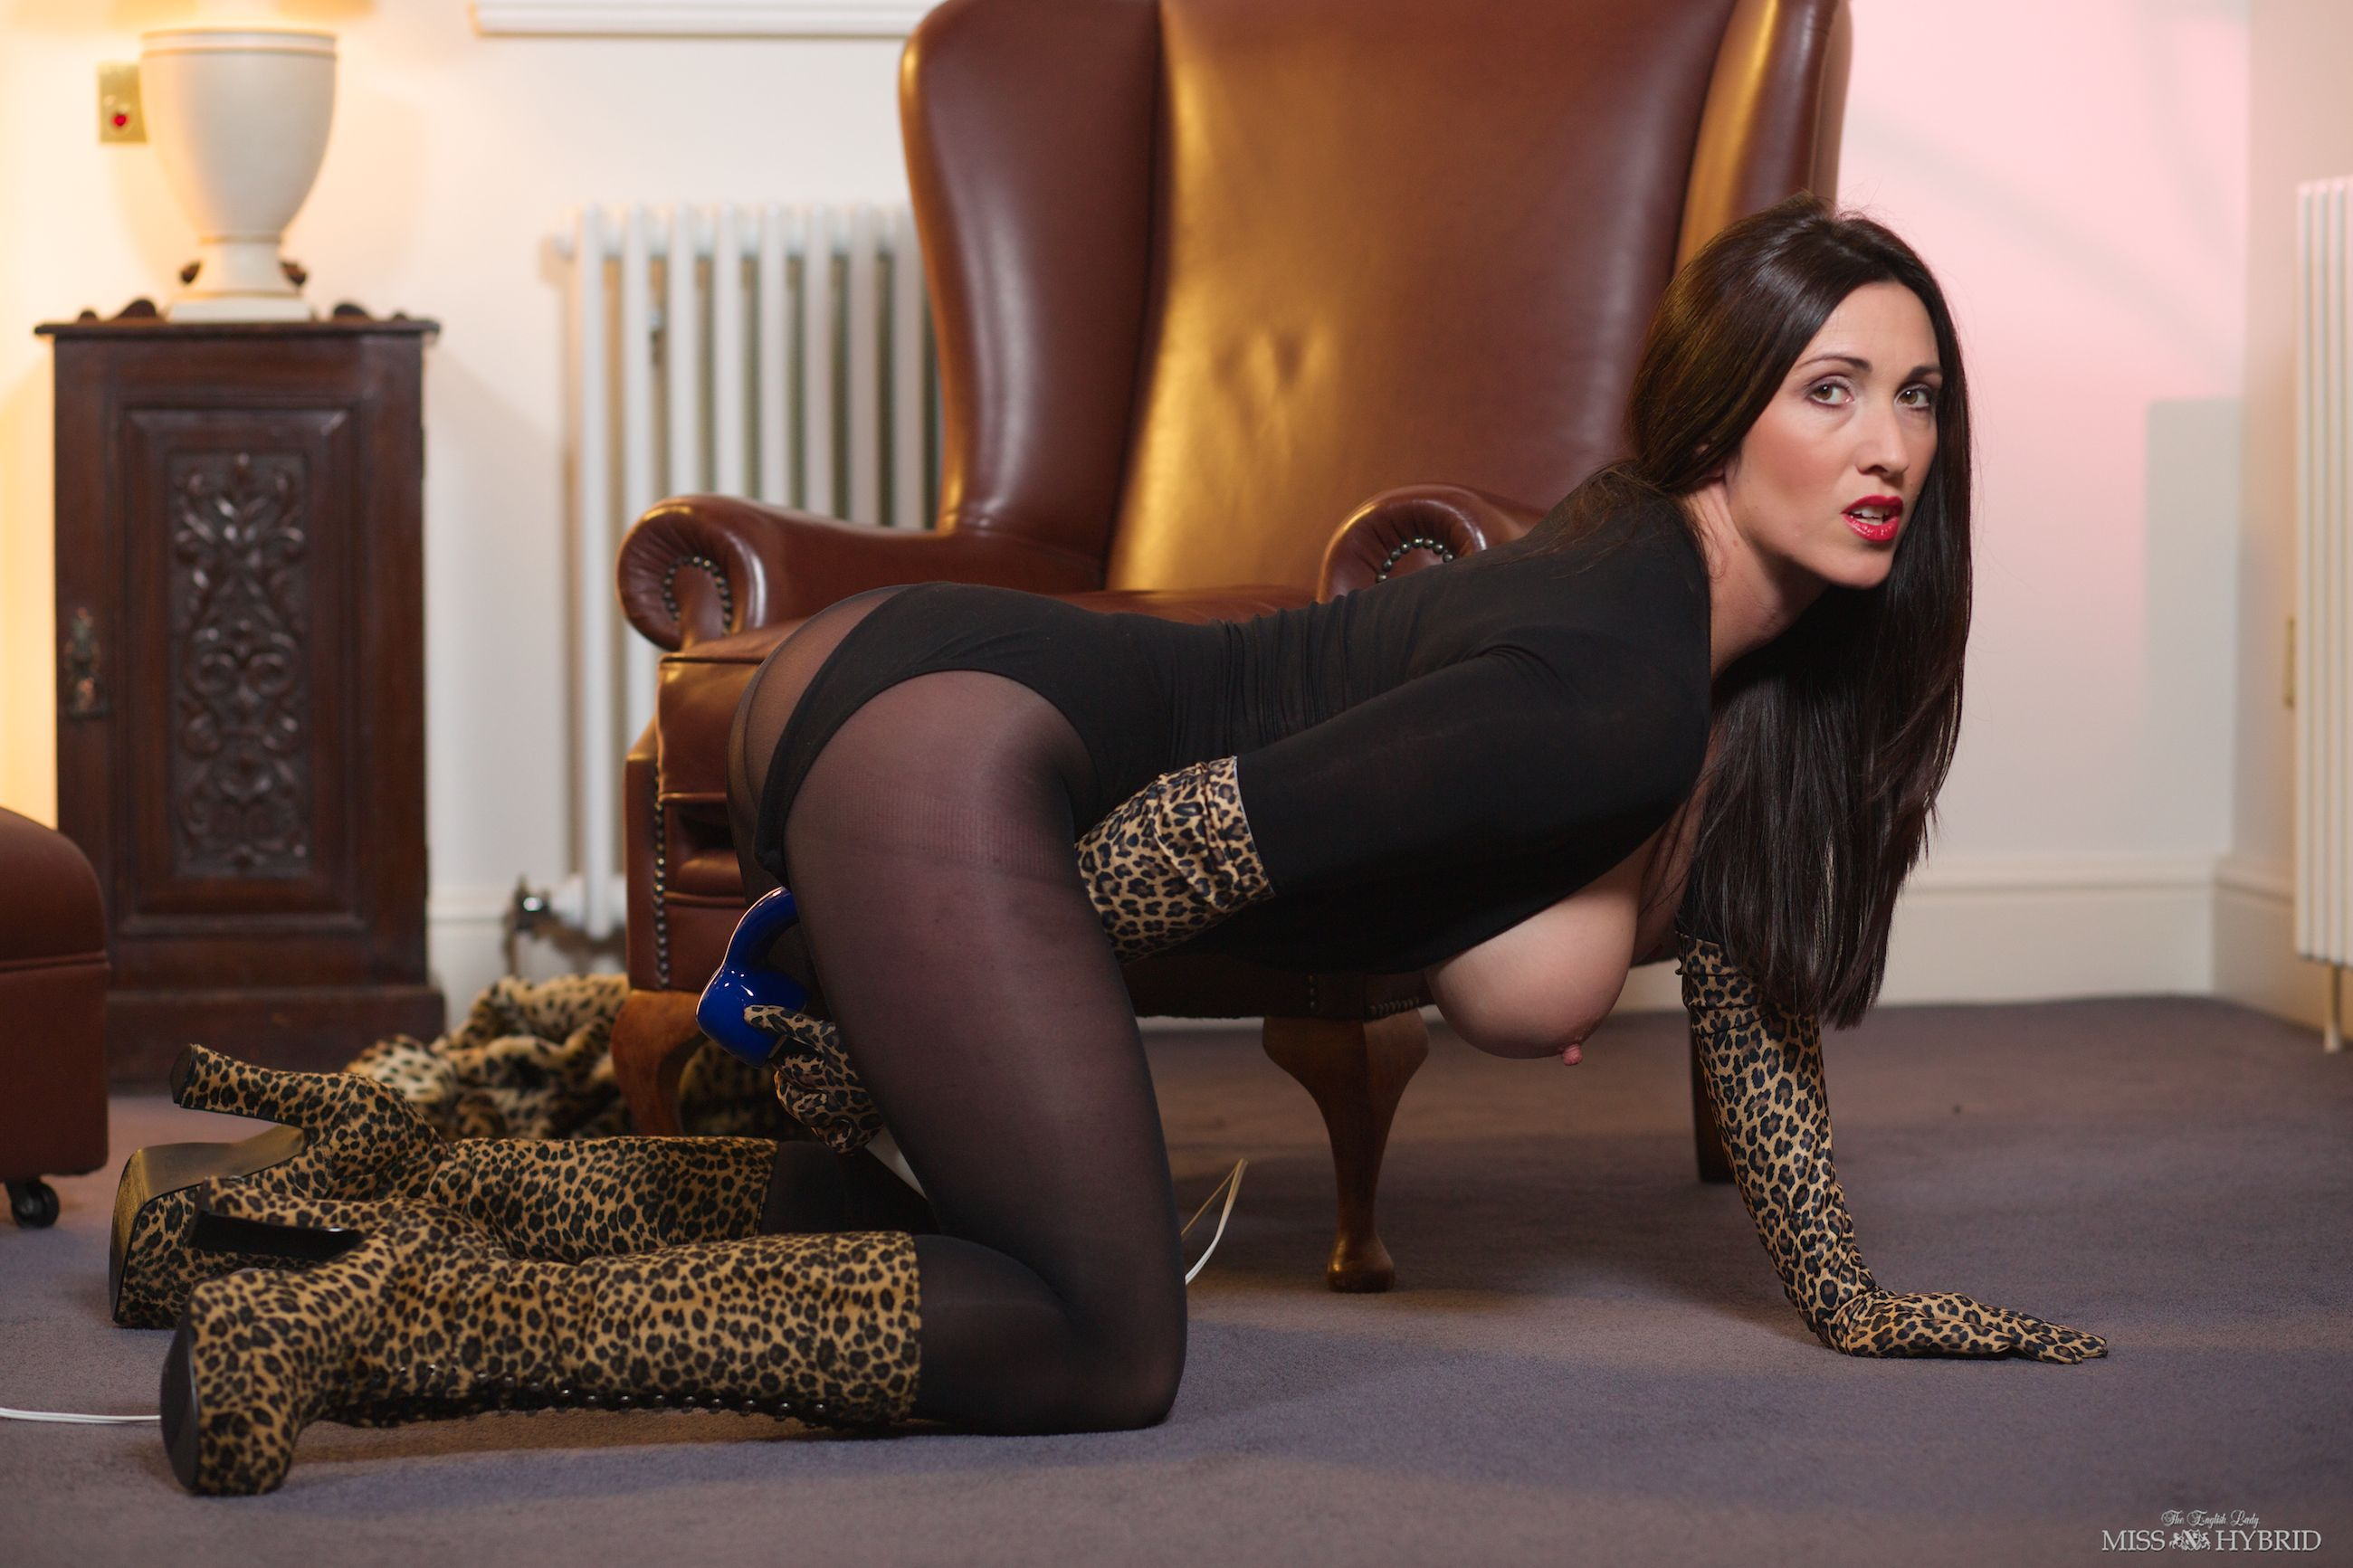 Leopard Boots and Gloves, Miss Hybrid, Magic wand, video